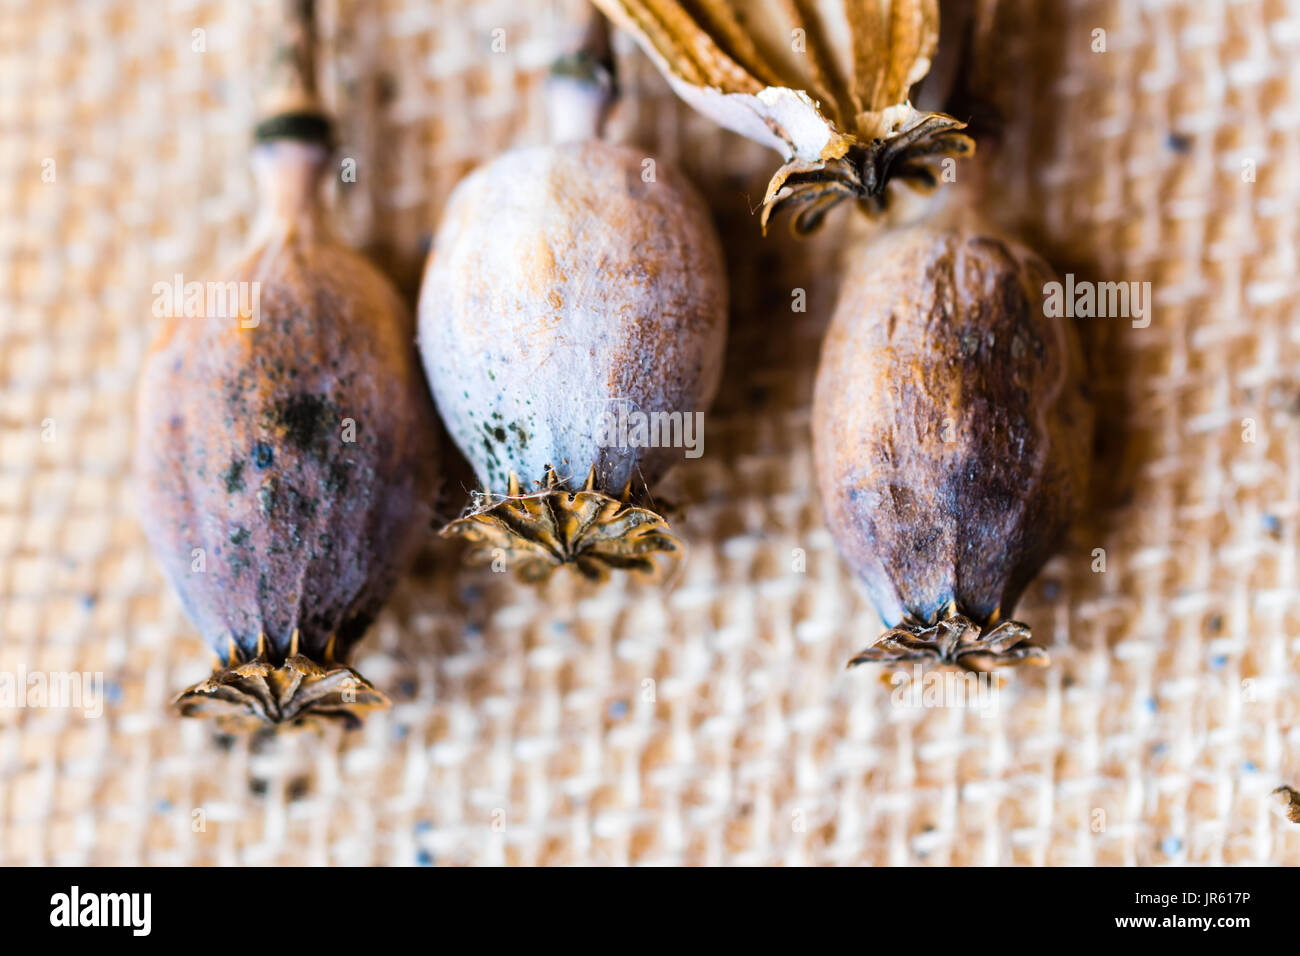 Macro photography of poppy heads and poppy seeds on textile rustic background. - Stock Image